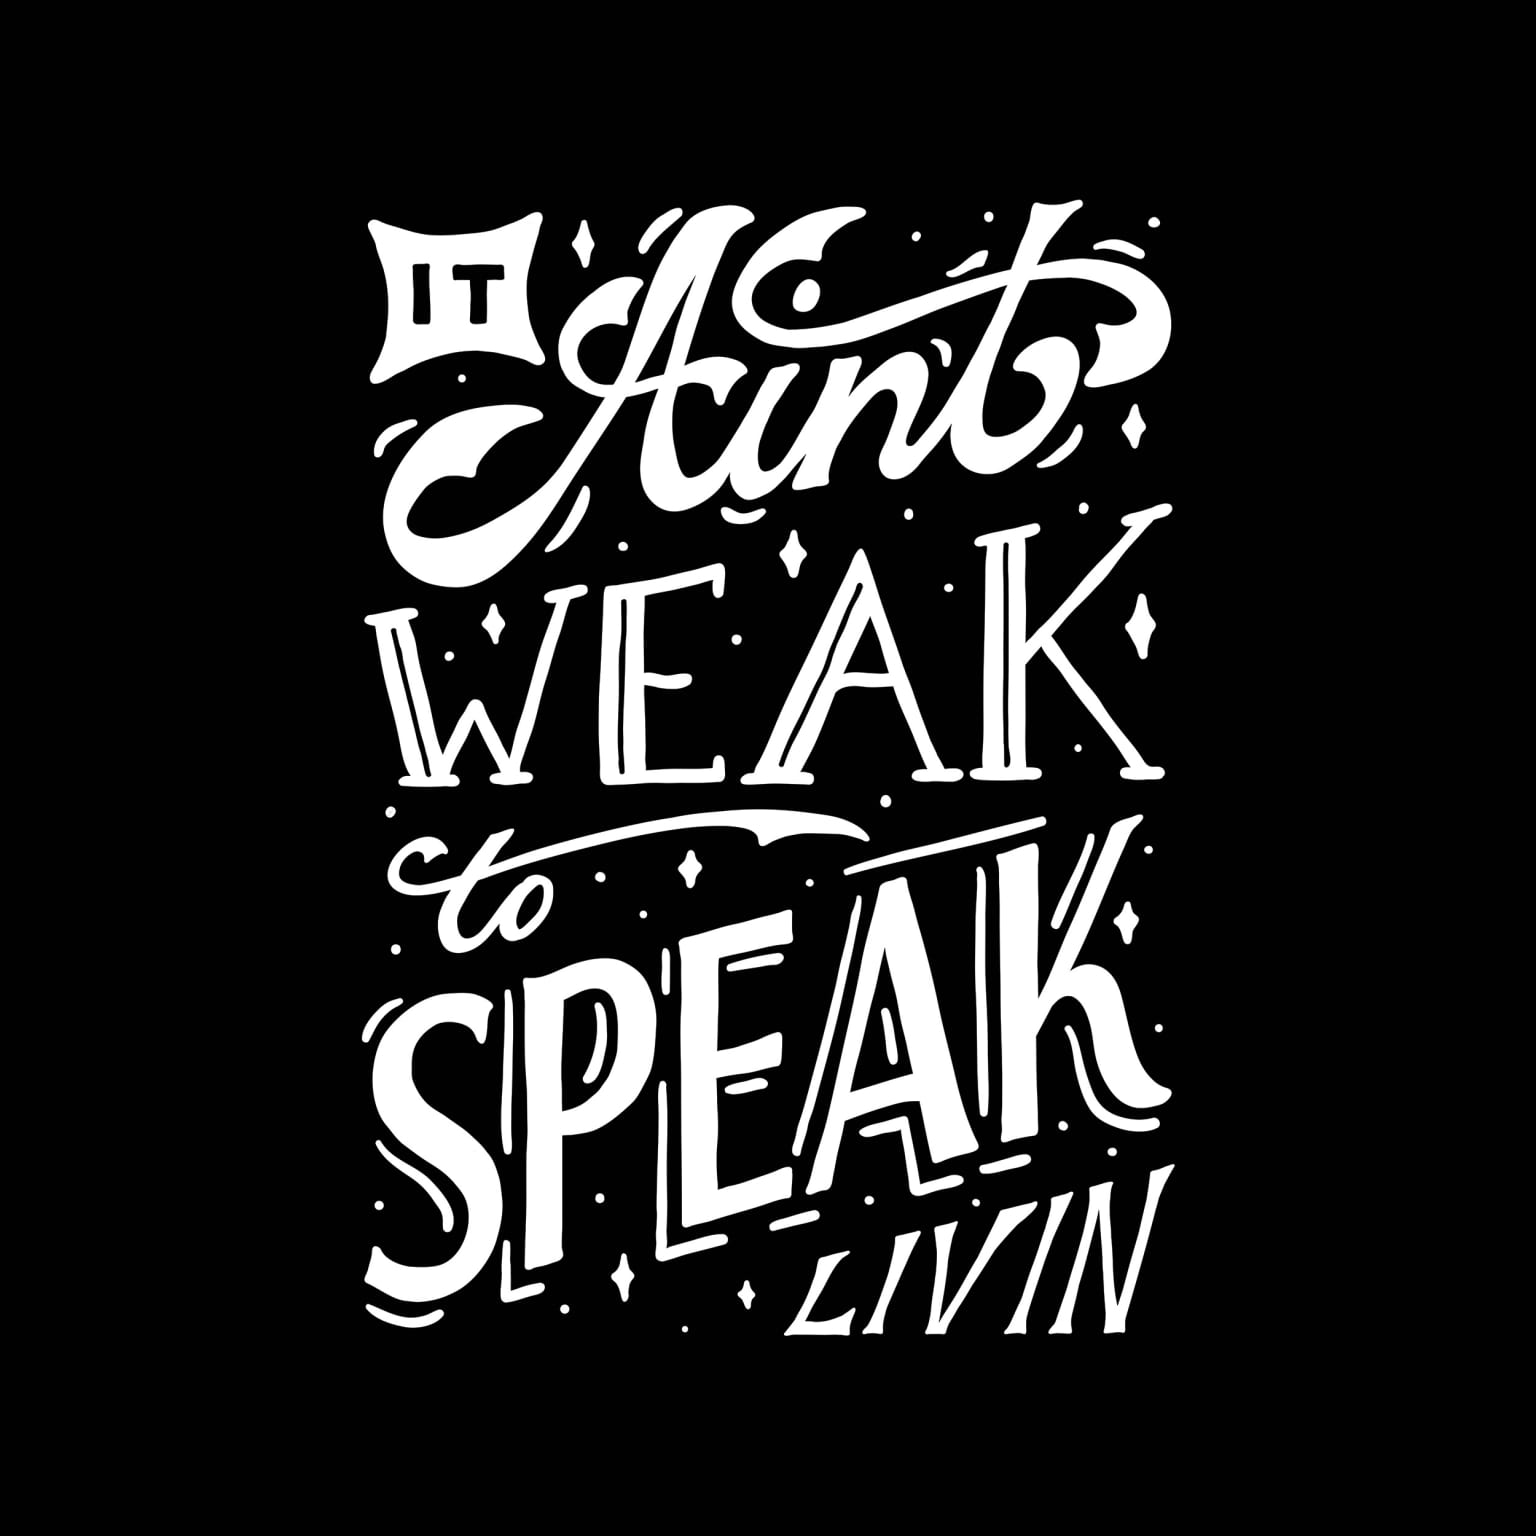 It Ain't Weak To Speak